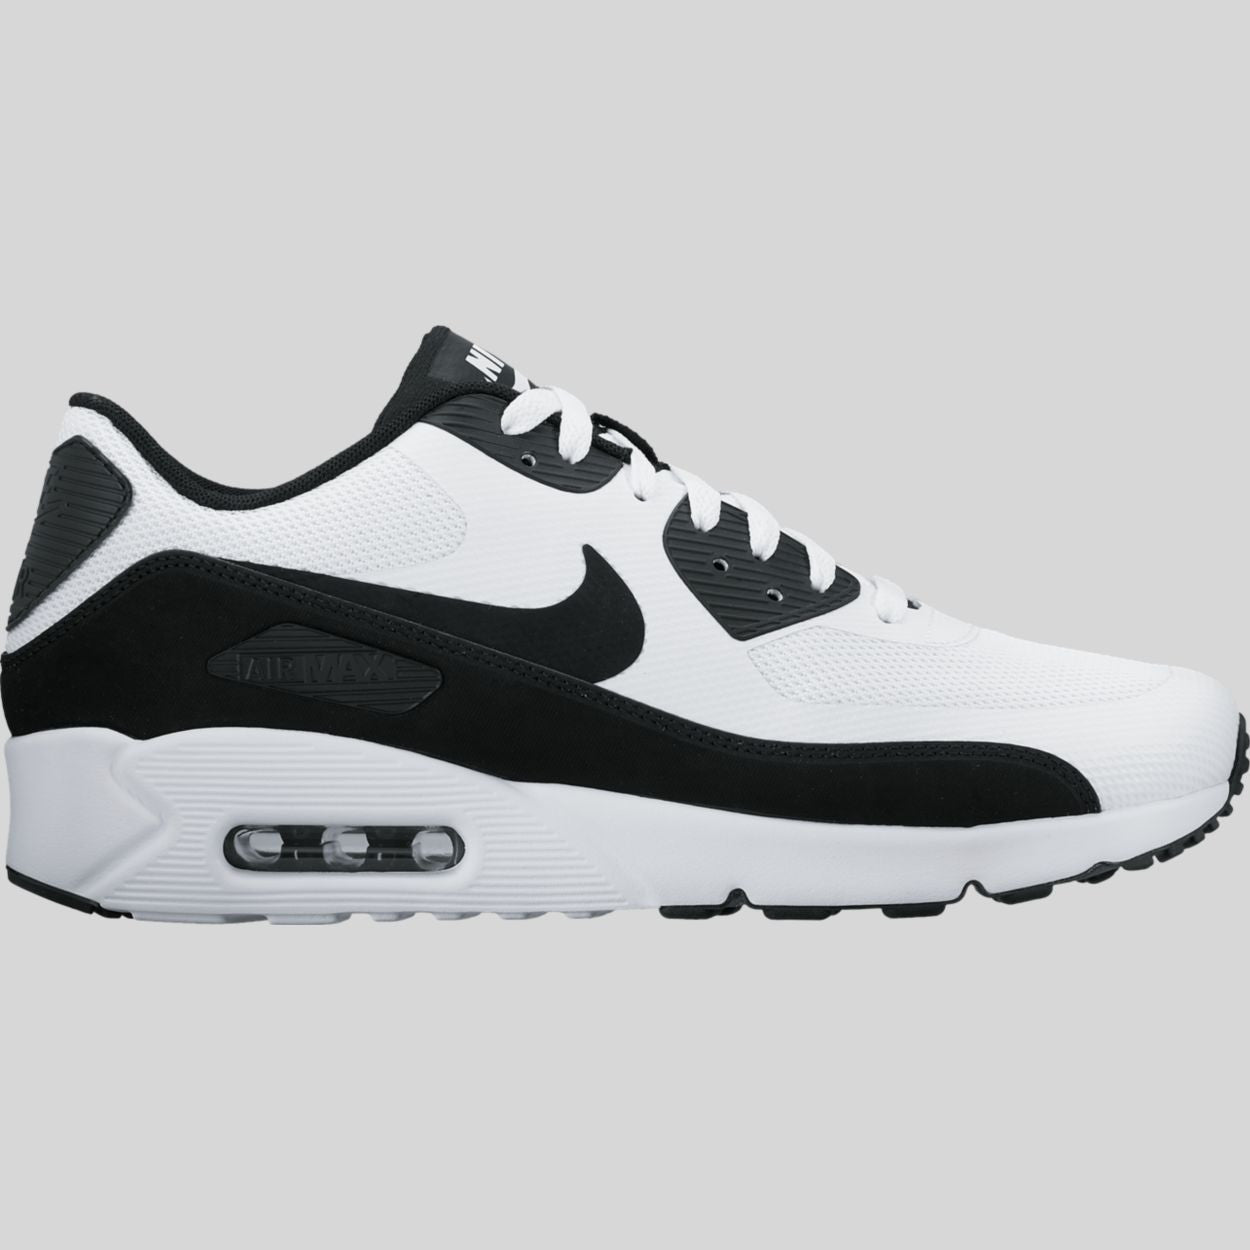 Nike Air Max 90 Ultra 2.0 Essential White Black